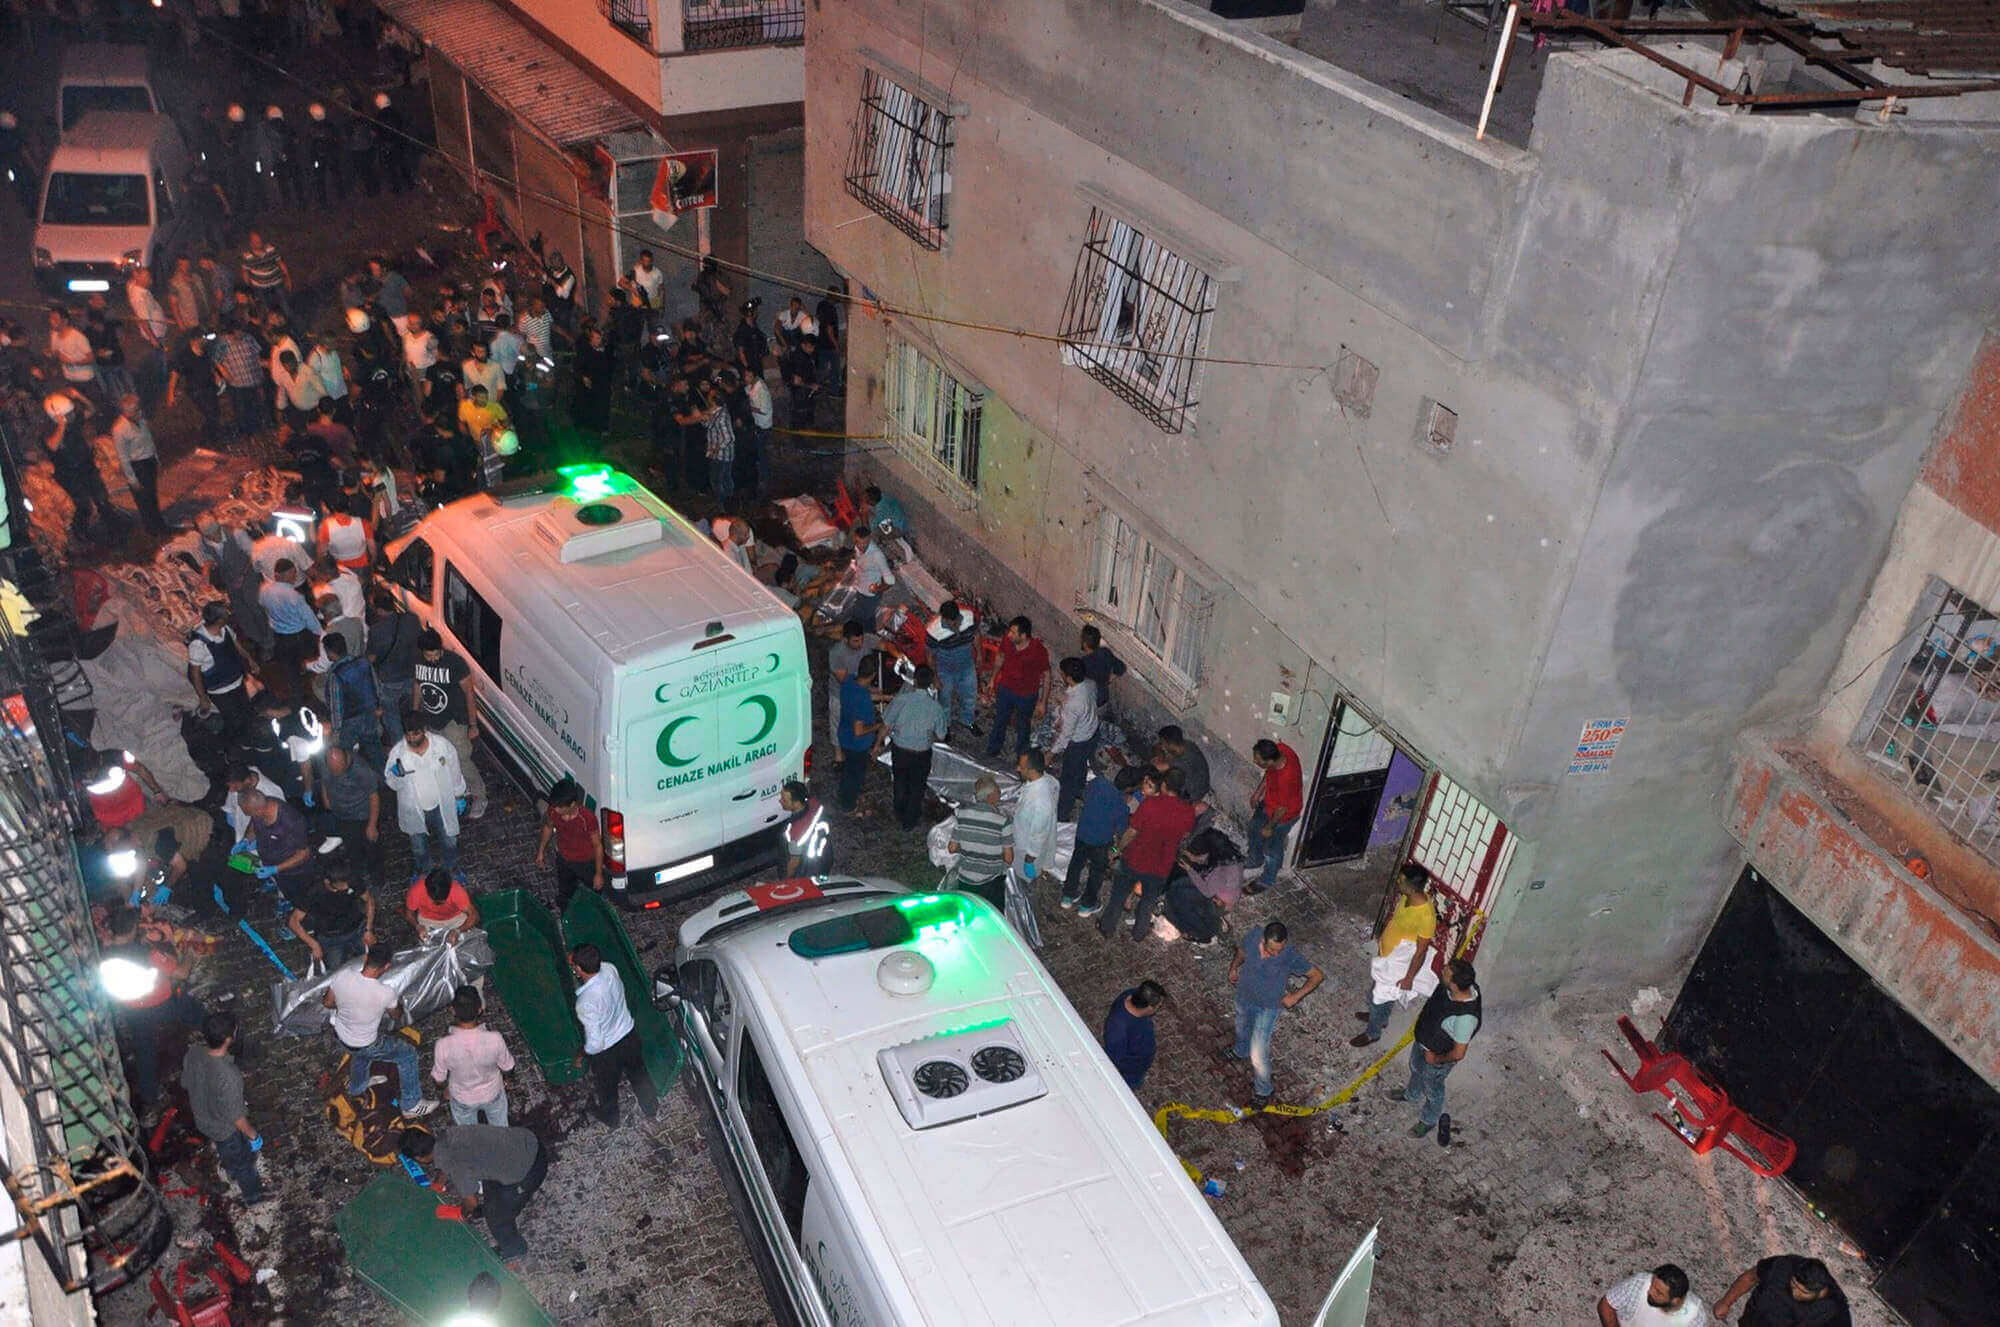 Image of people carrying dead bodies into ambulance after explosion at wedding in Turkey